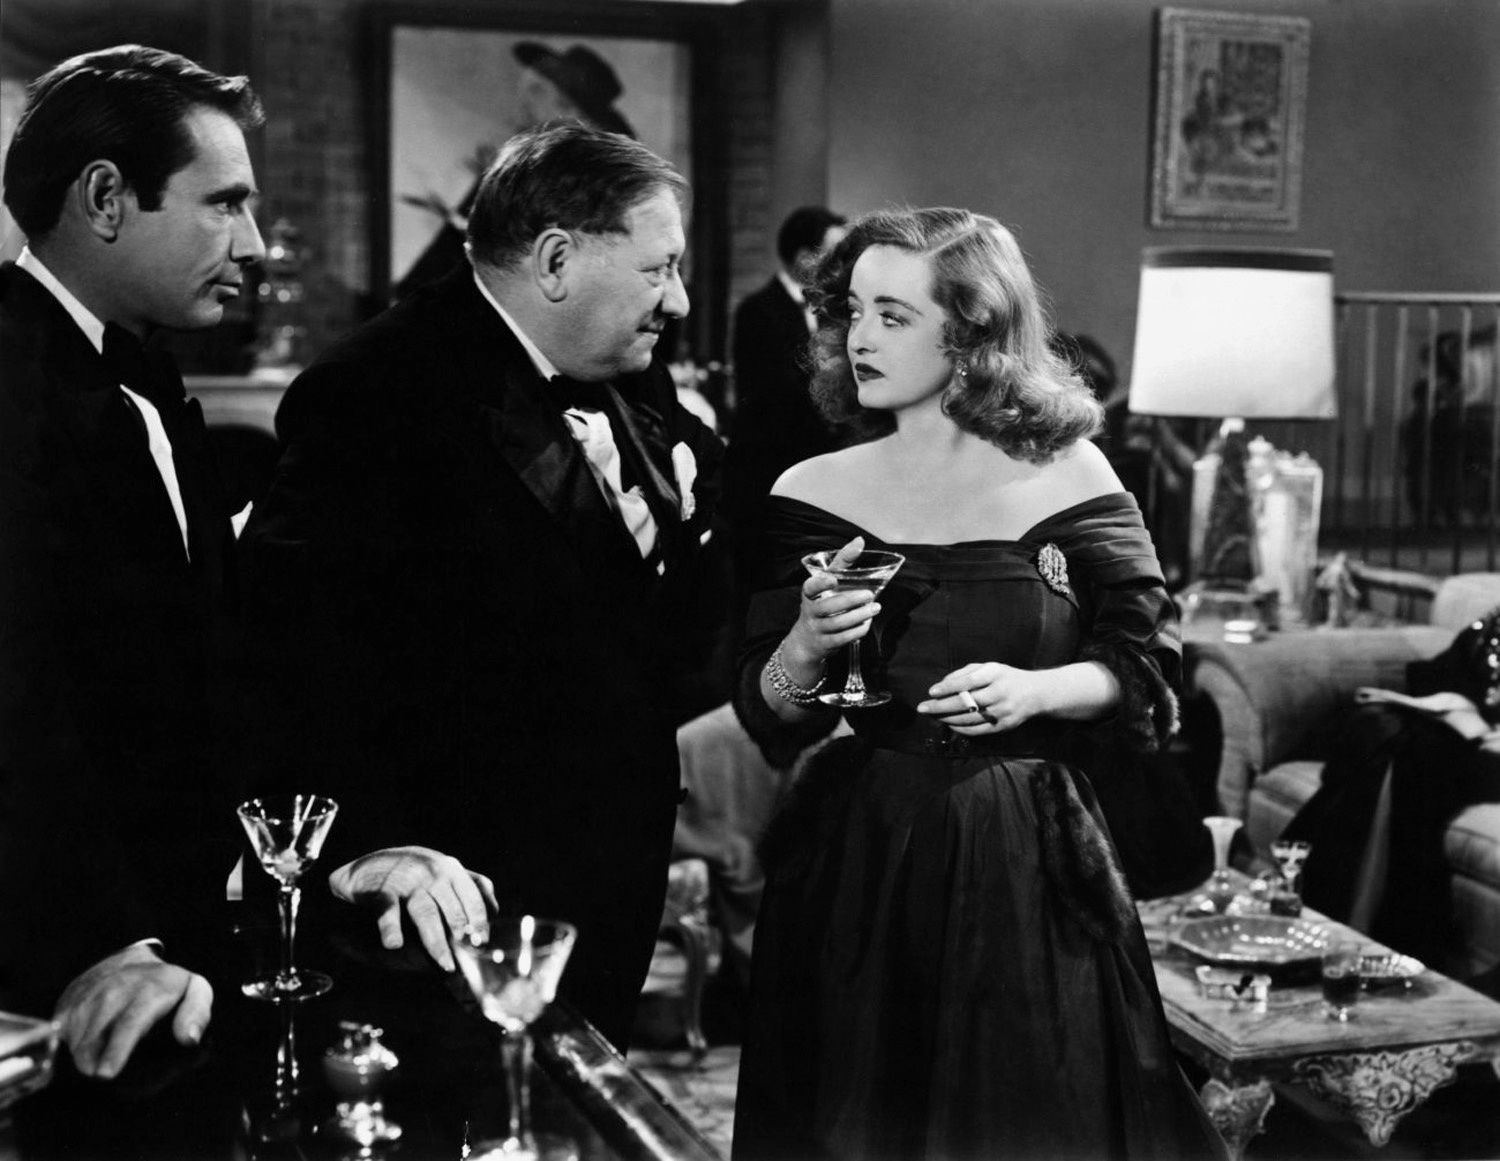 Eve [En:All About Eve] -  Joseph L. Mankiewicz (1950)